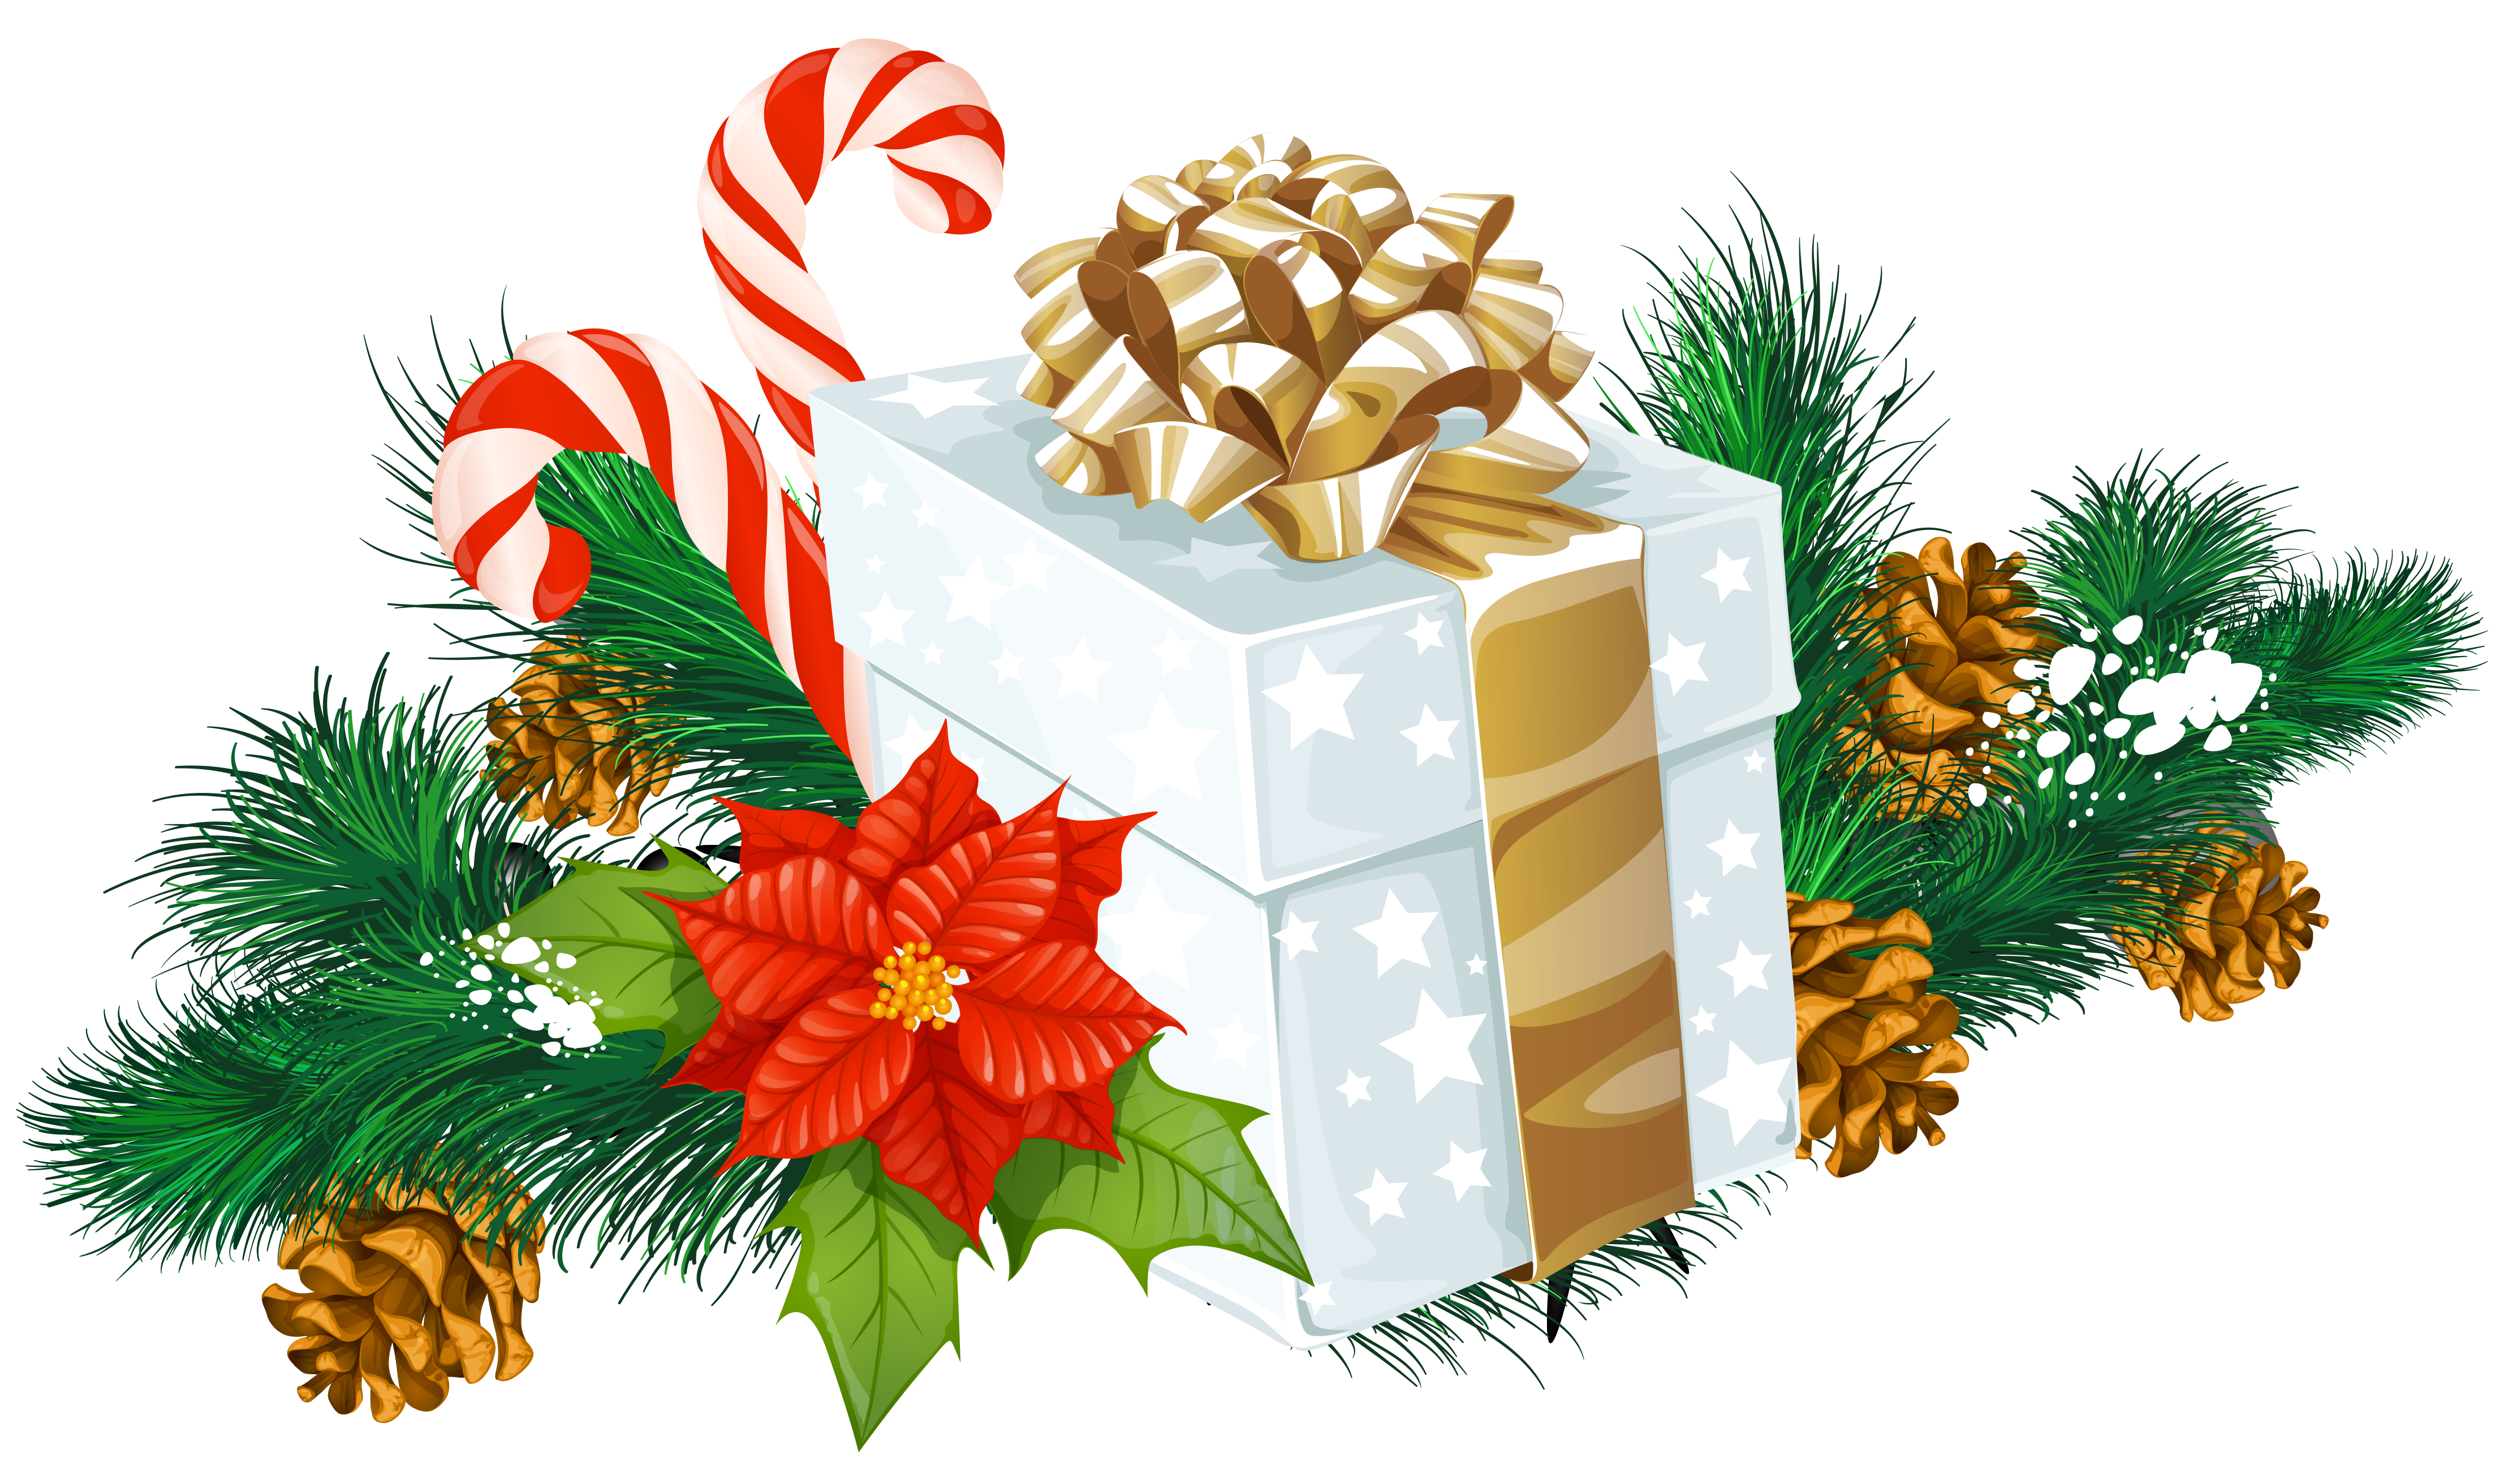 Christmas clipart png. Transparent white gift decor